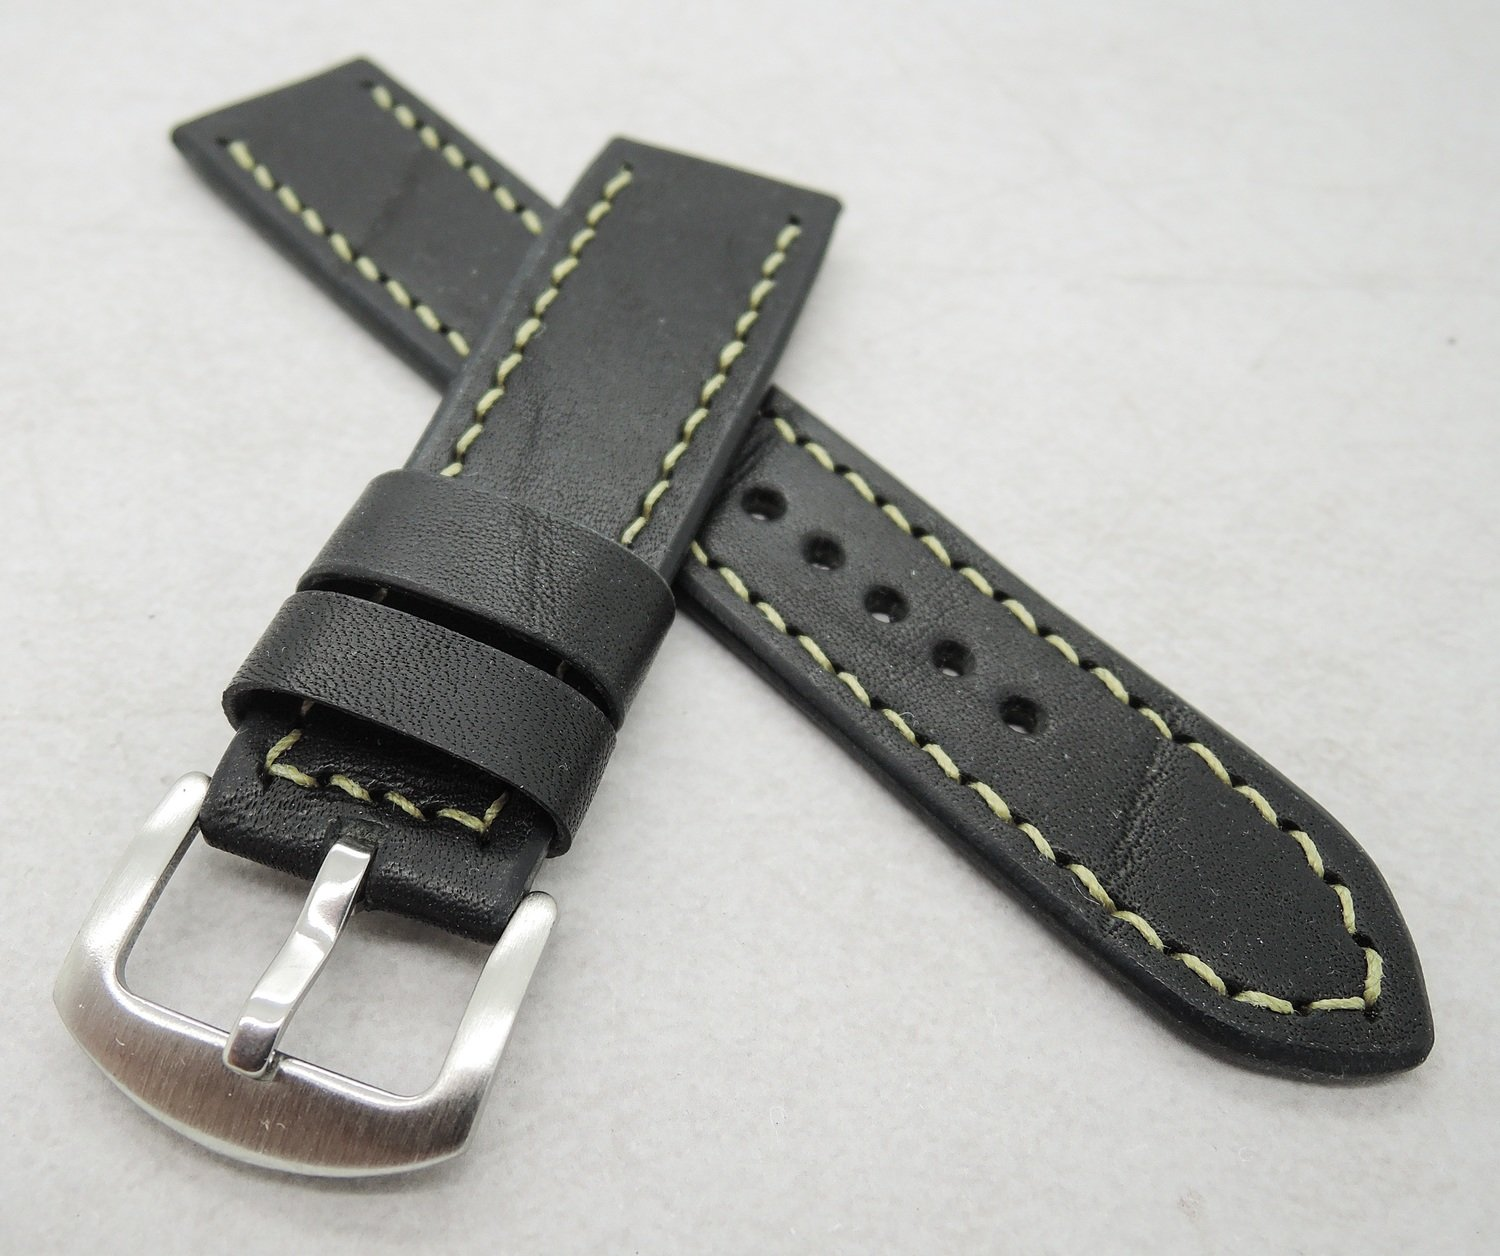 22mm wide black veg tan strap (20mm at the buckle)